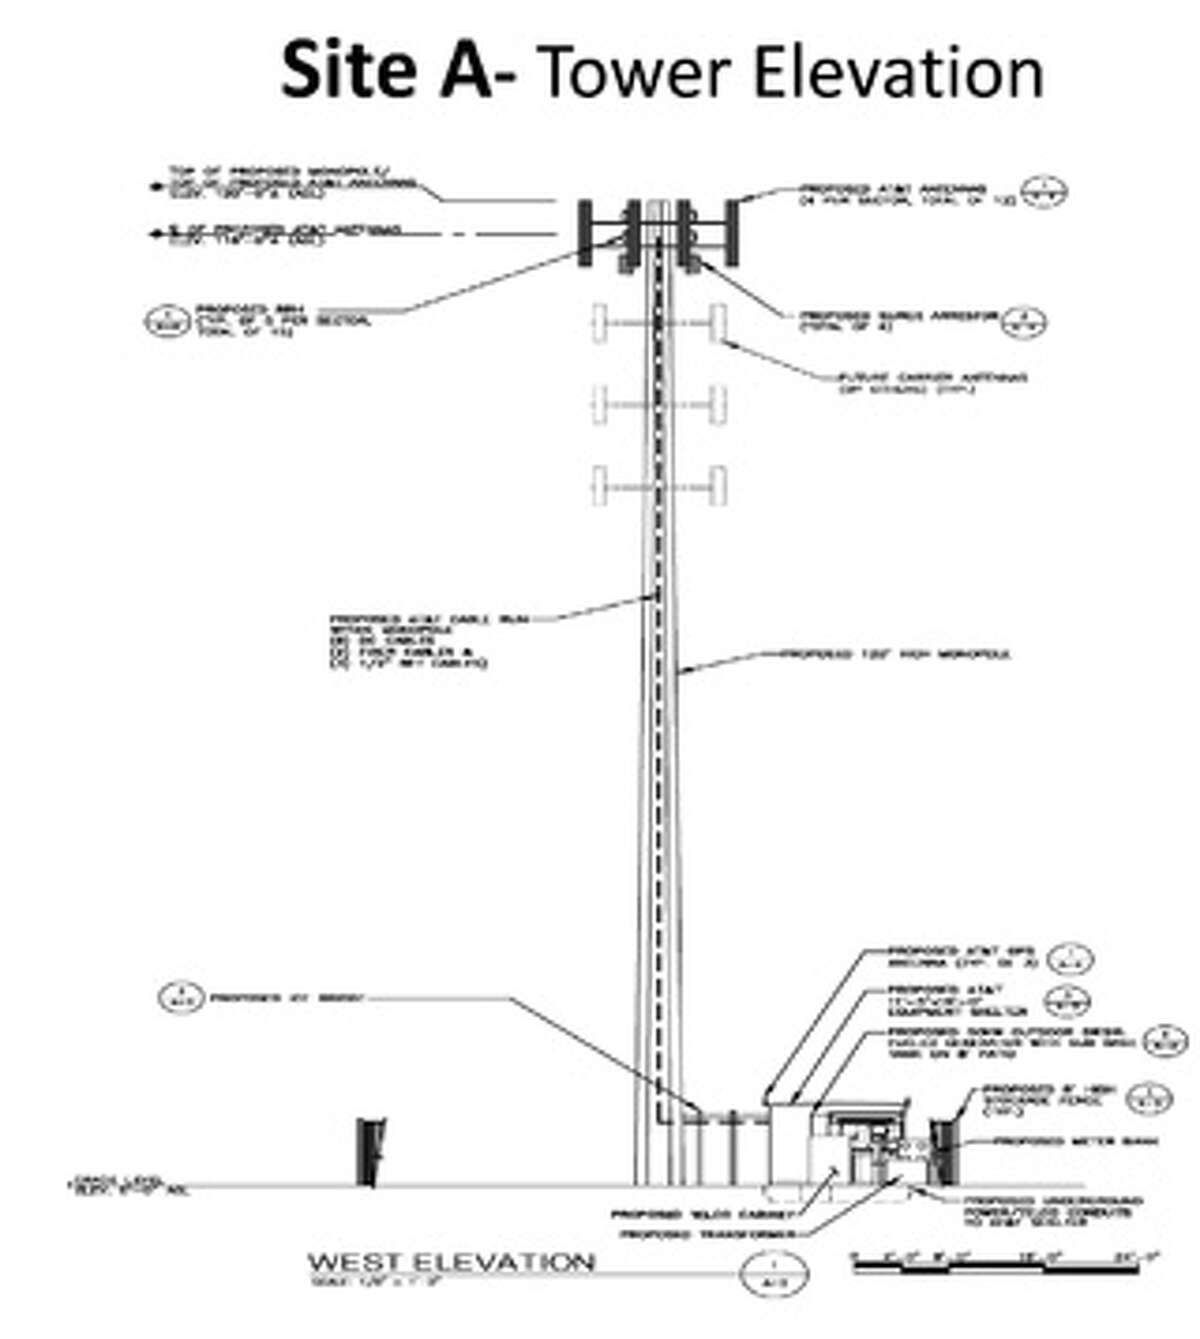 A rendering of the AT&T monopole cell tower that could be proposed for Site A, off Perry Hill Road on Highland Golf Club property